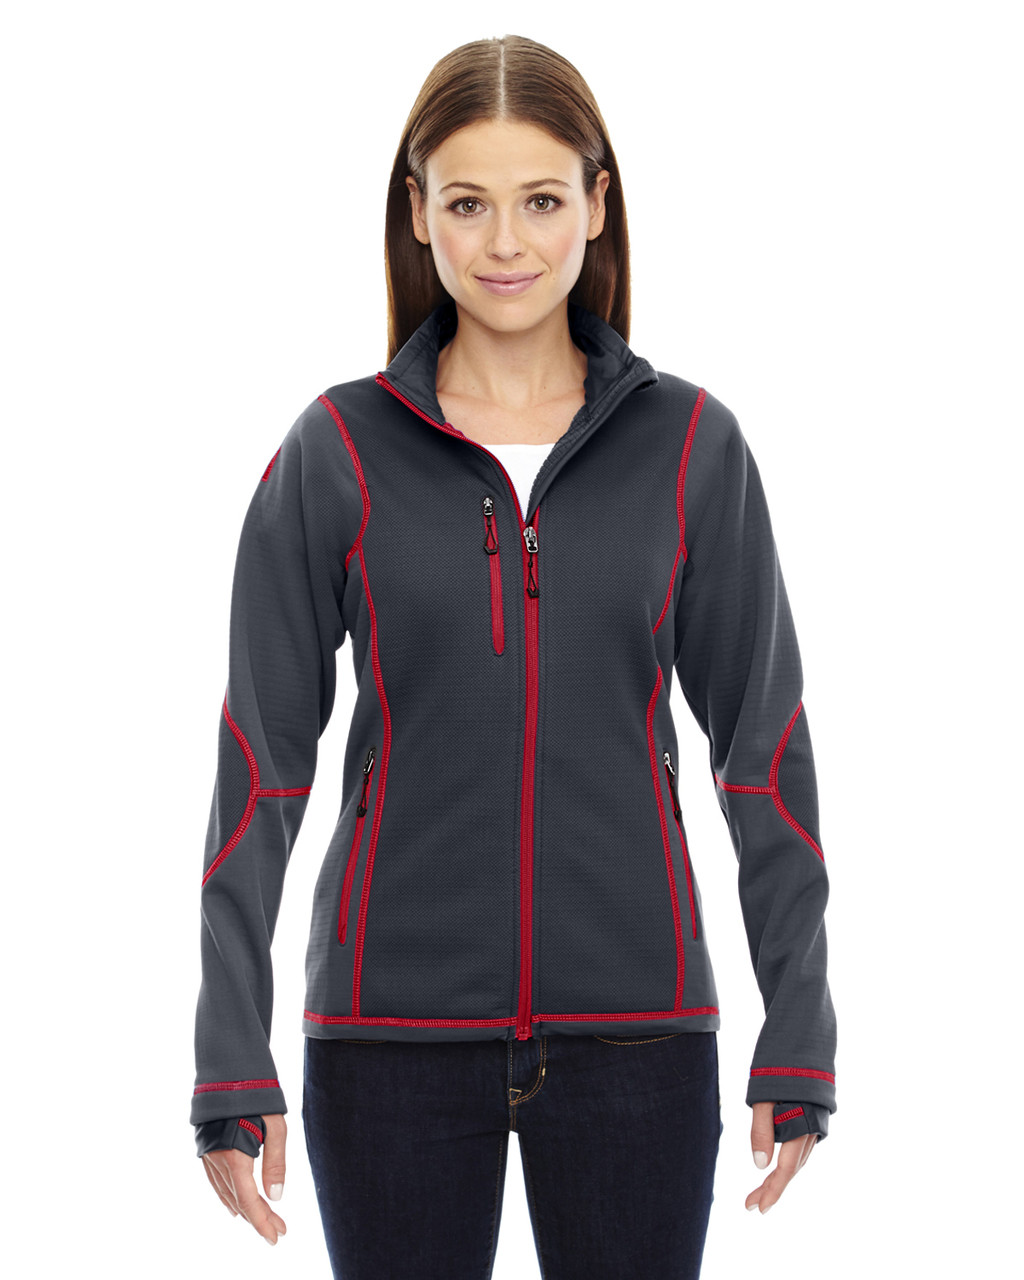 Carbon/Olympic Red - 78681 North End Sport Red Pulse Textured Bonded Fleece Jacket with Print